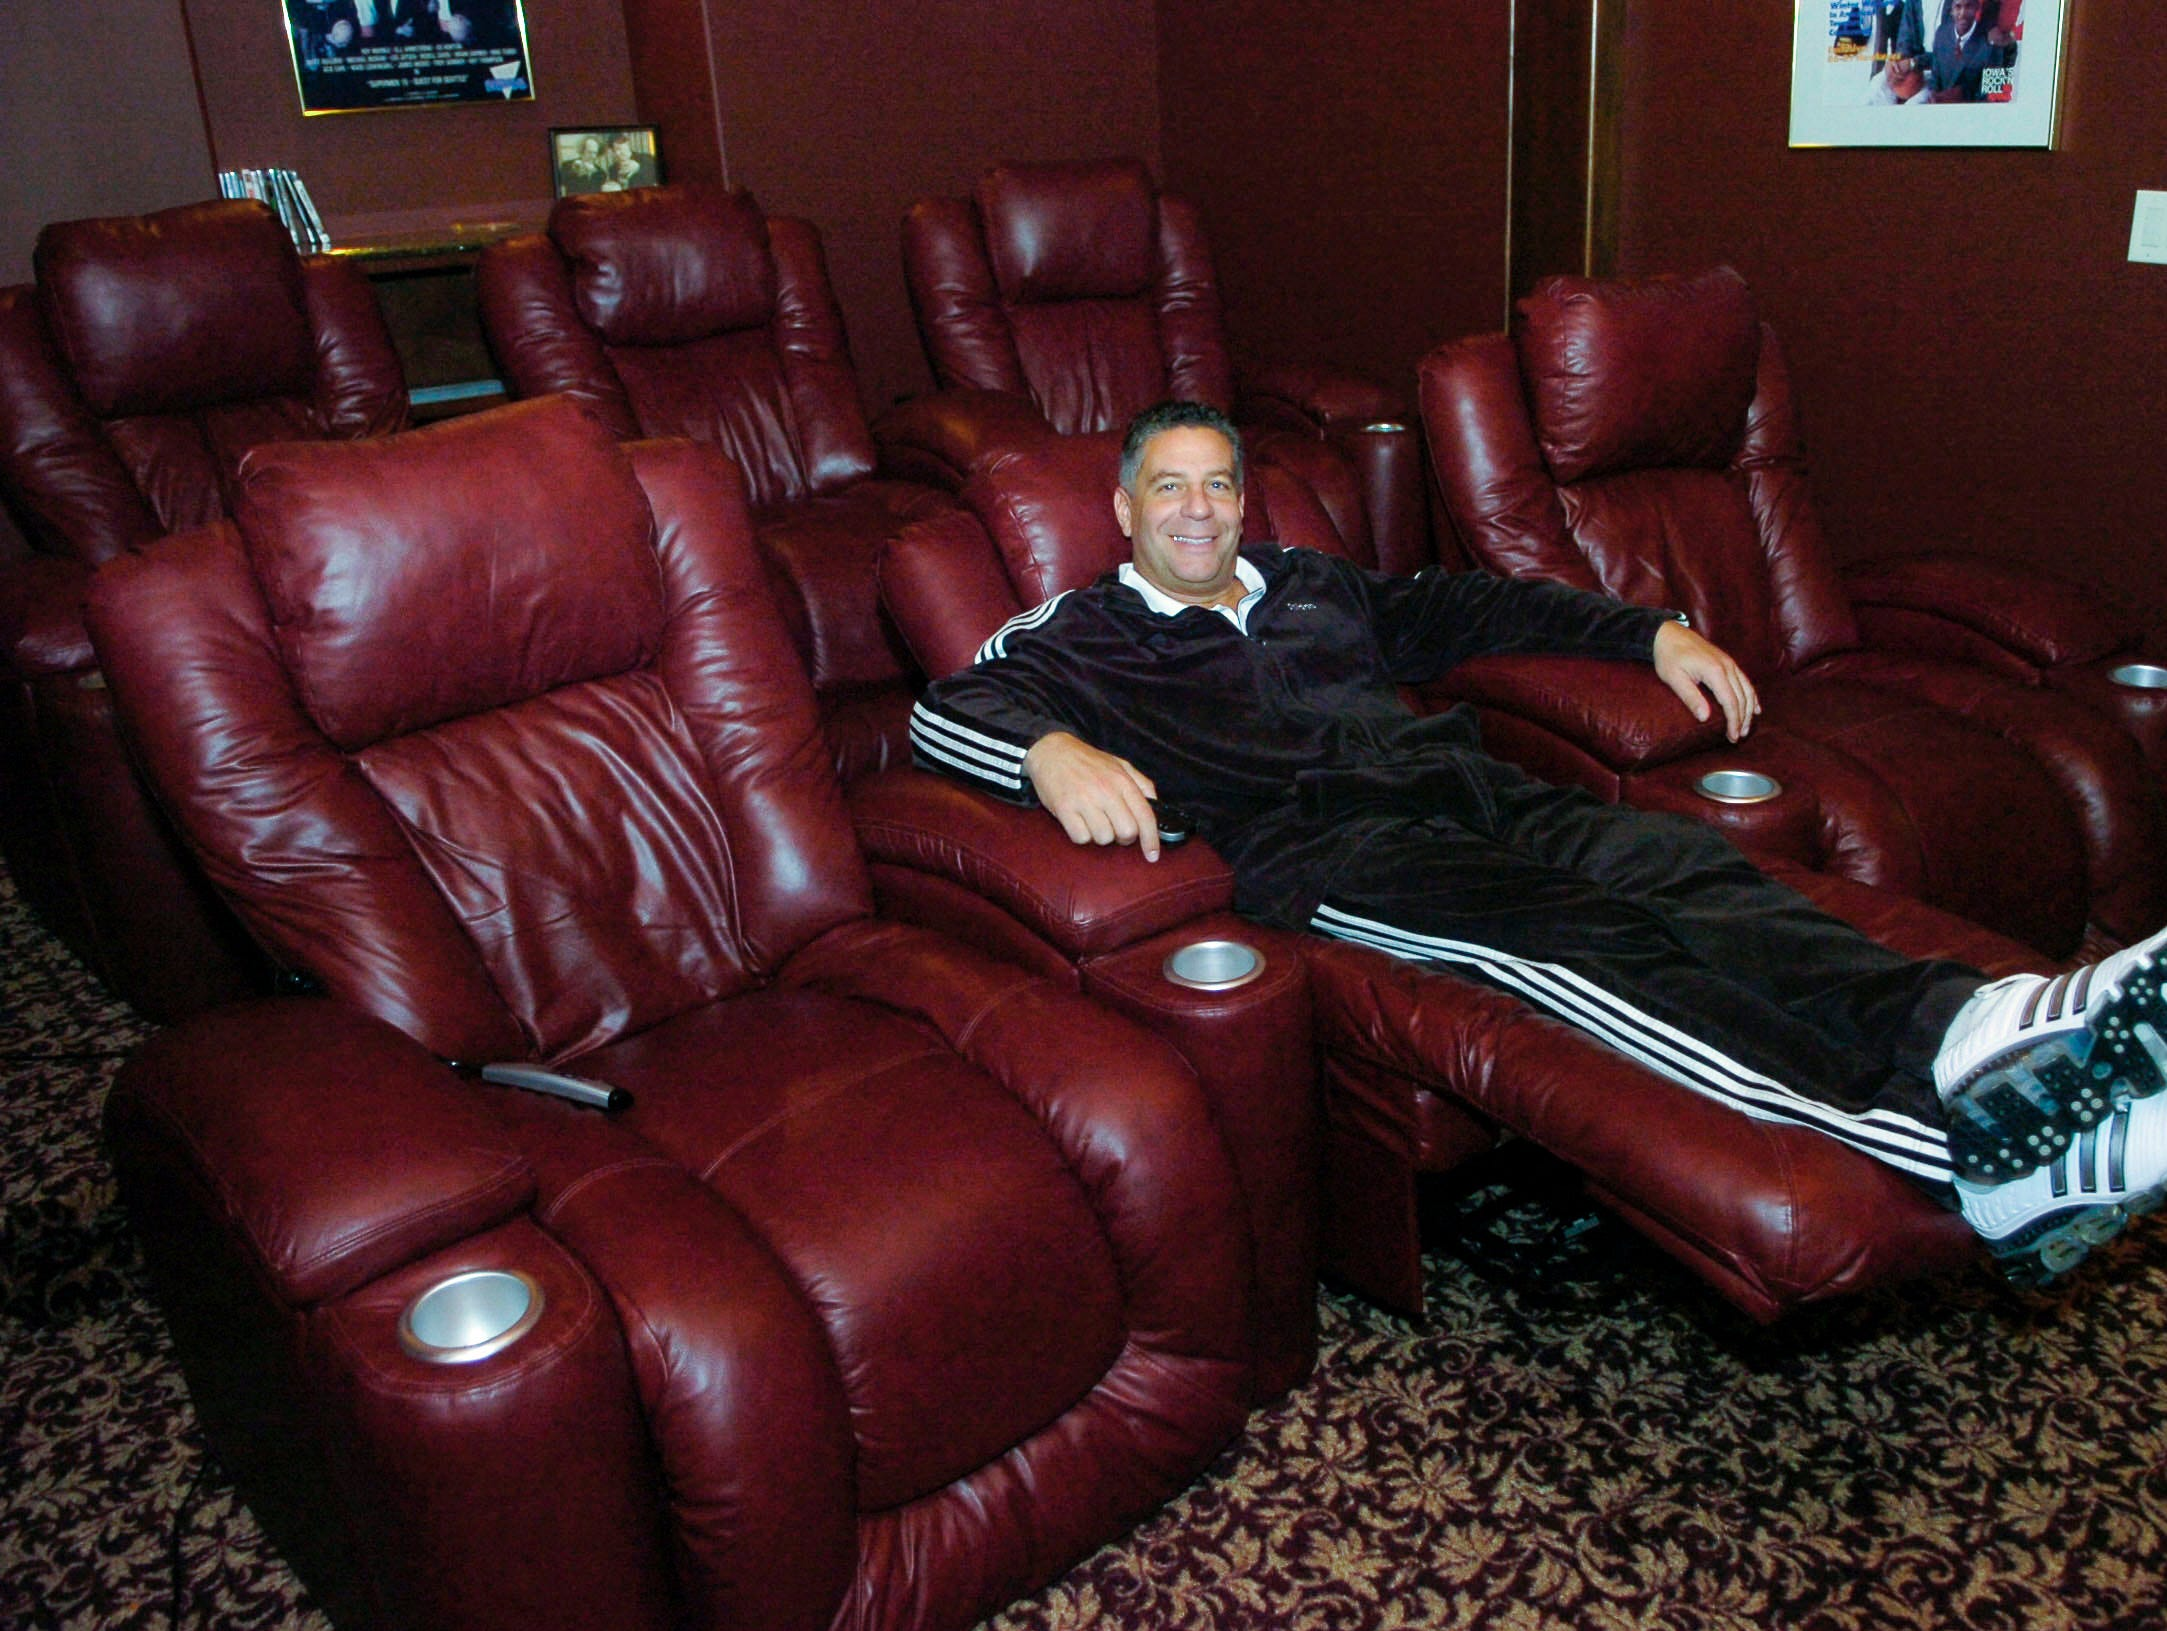 University of Tennessee basketball coach Bruce Pearl relaxes Friday in his home theatre of his first Gettysvue home in 2008.